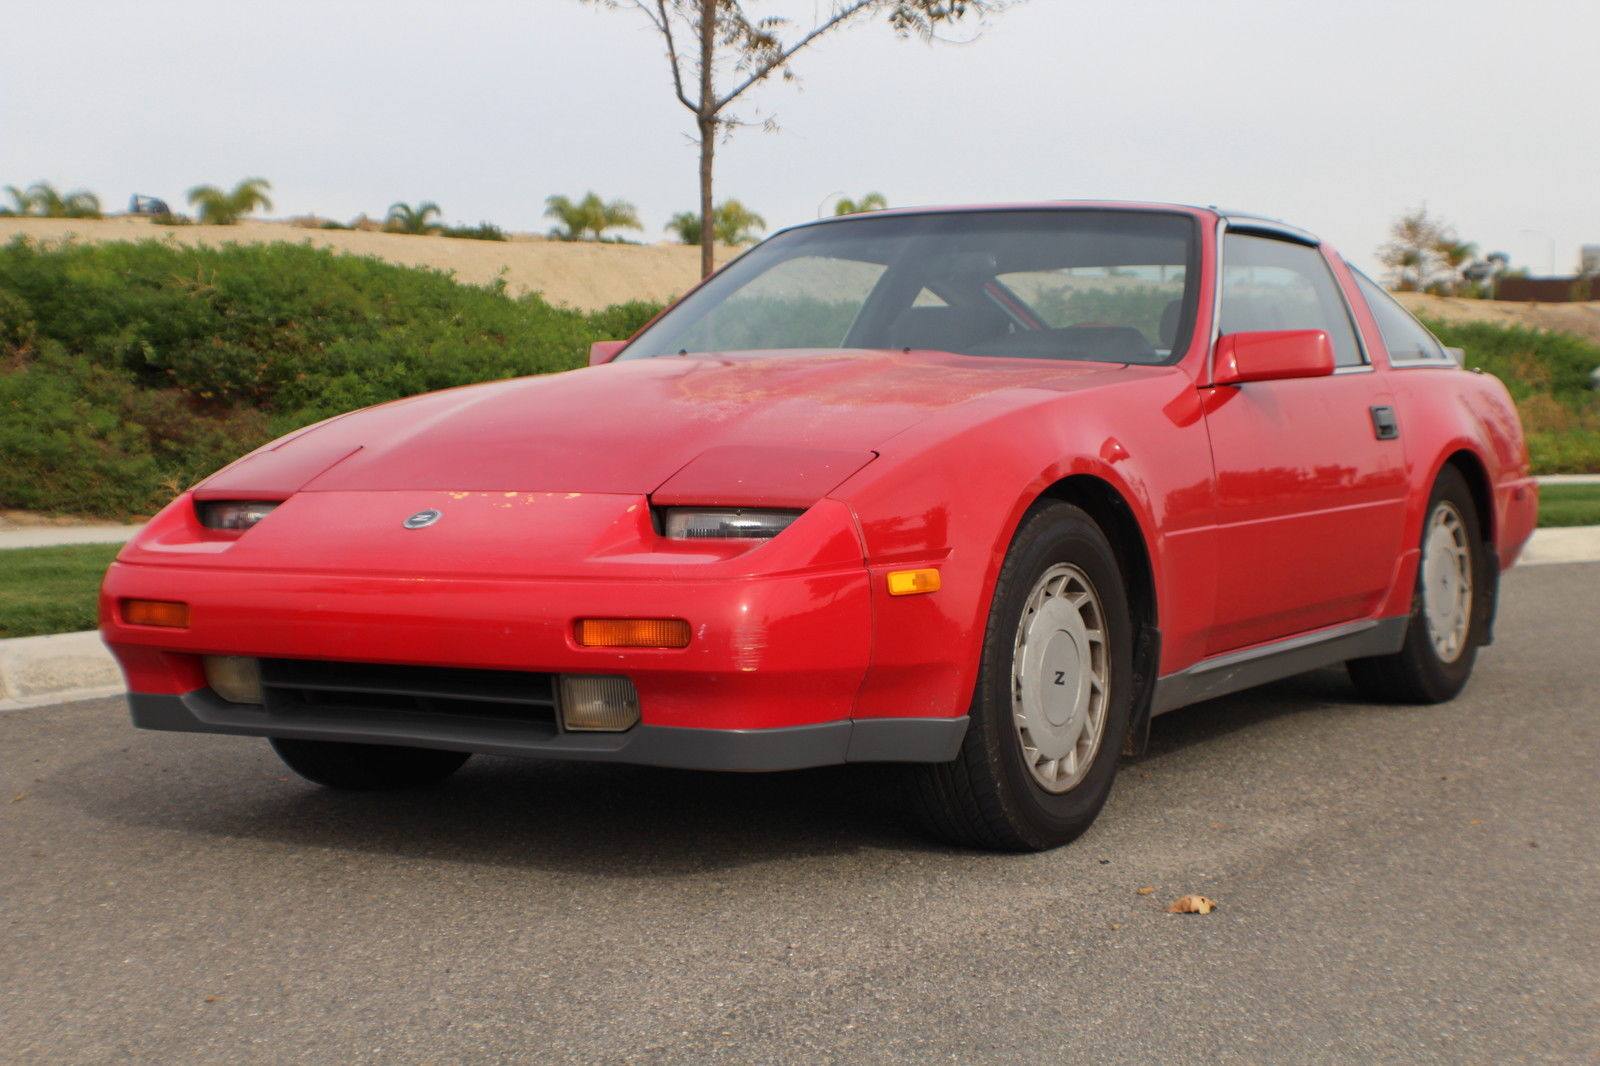 Nissan 300zx For Sale >> 1989 Nissan 300ZX Base Coupe 2-Door 3.0L - Classic Nissan 300ZX 1989 for sale